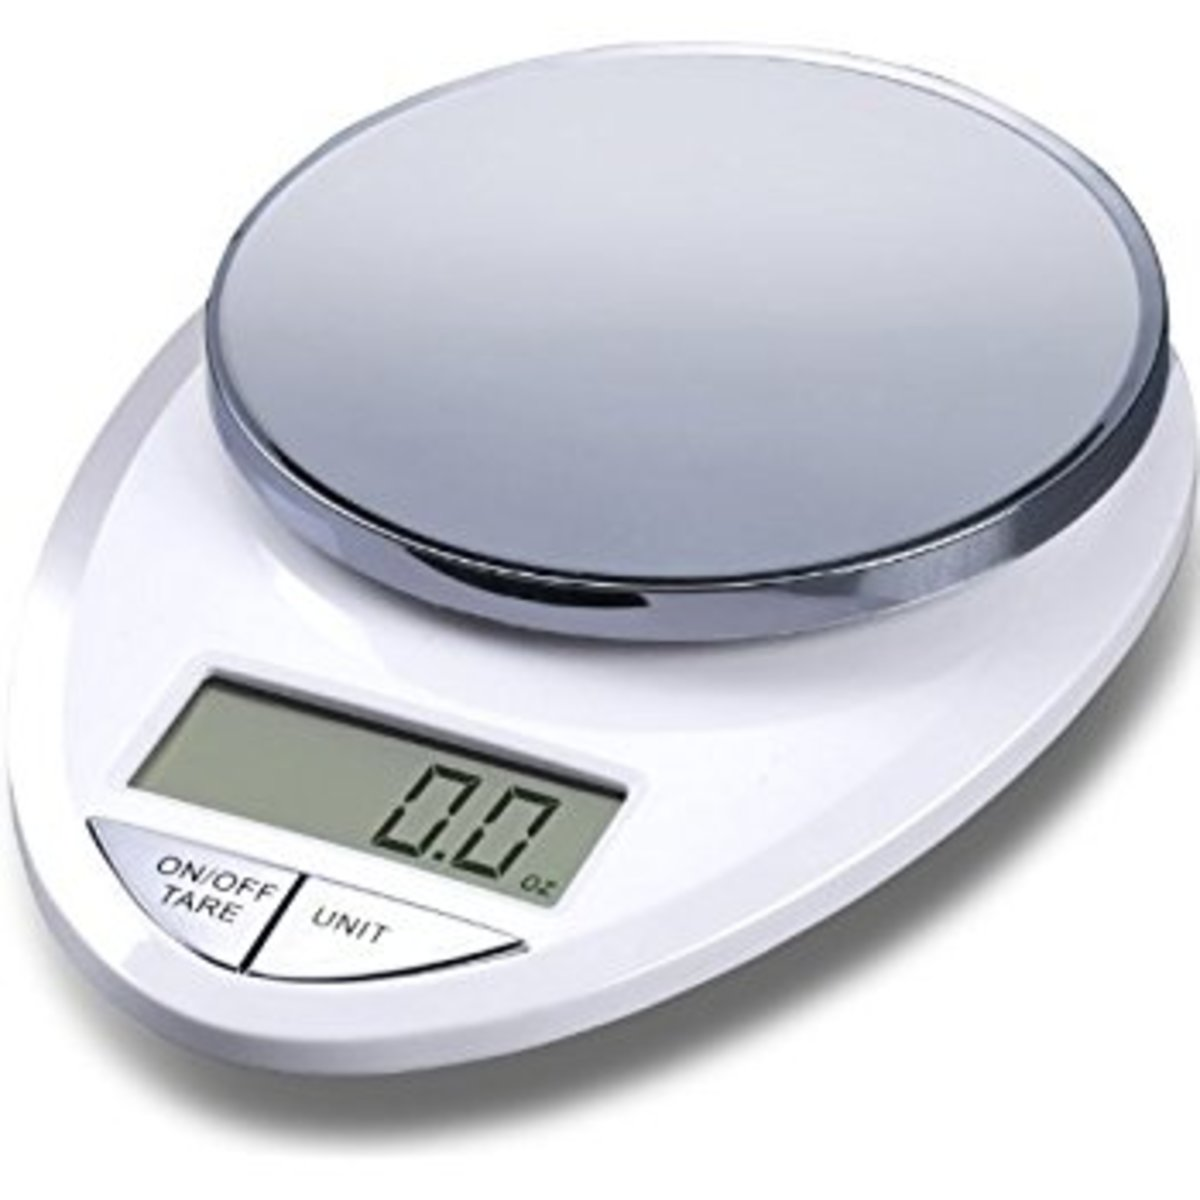 Kitchen Smart Scales for Weight Loss